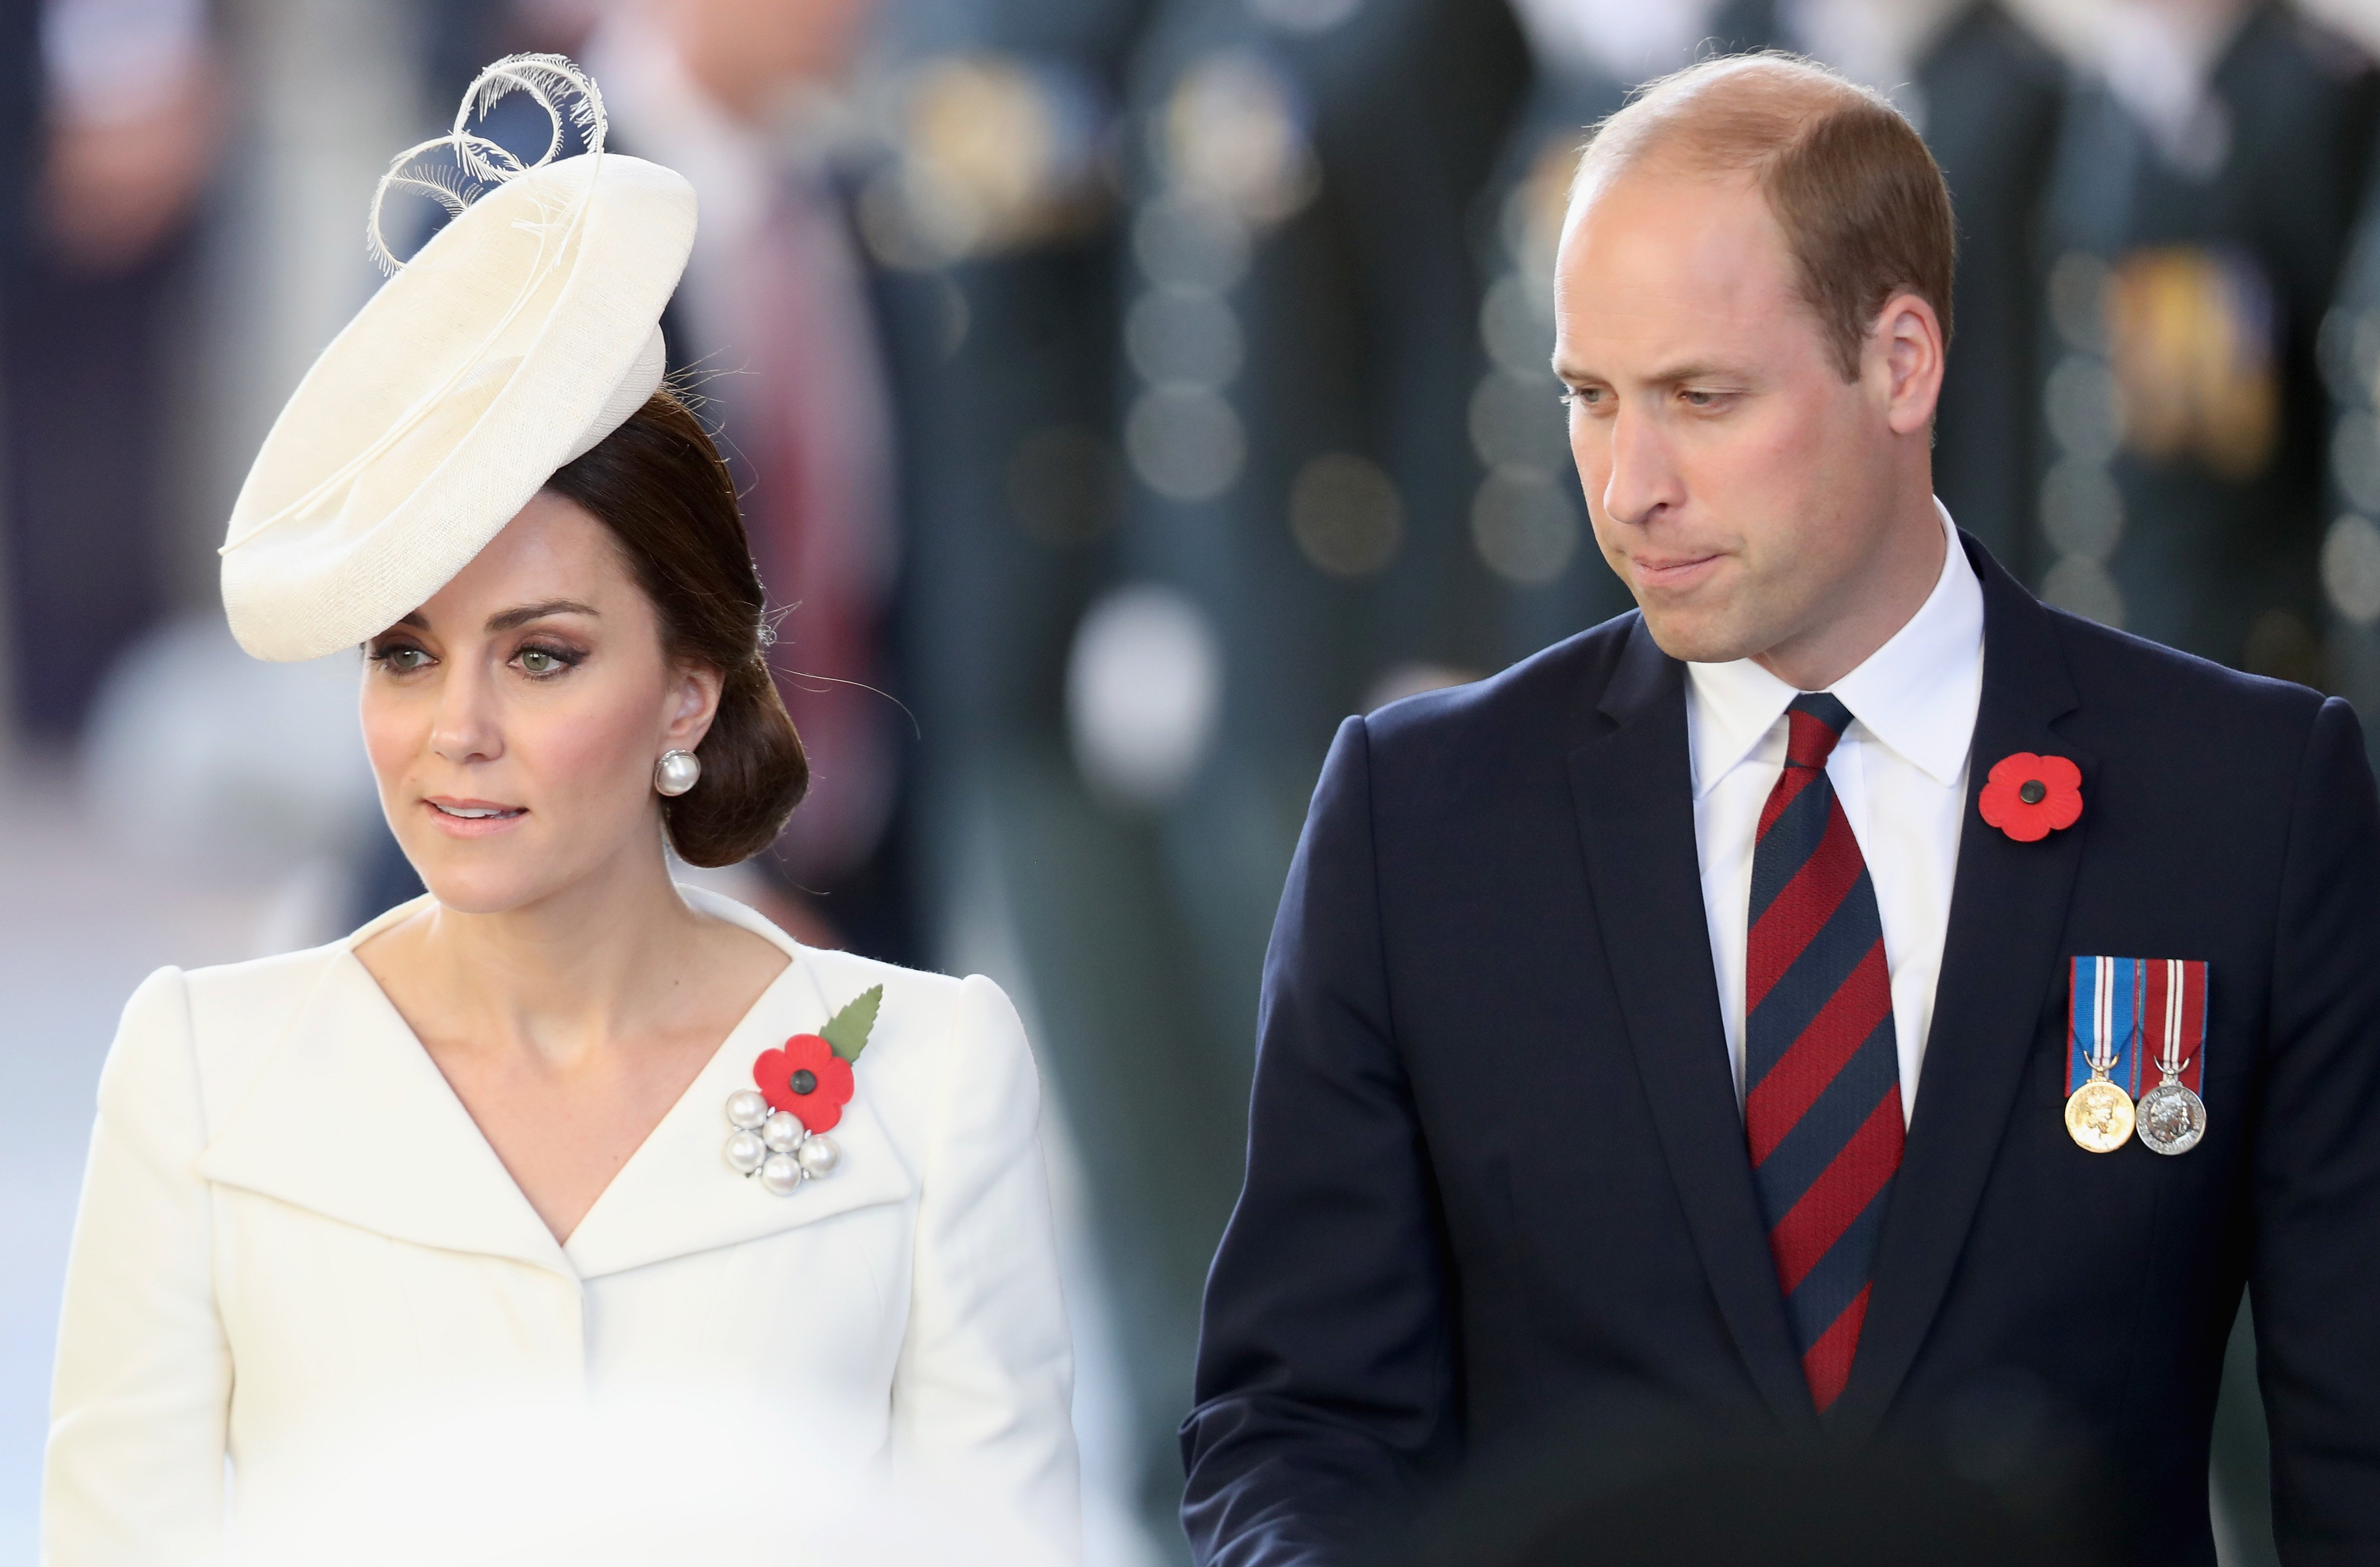 Prince William, Duke of Cambridge and Catherine, Duchess of Cambridge attend the Last Post ceremony at the Commonwealth War Graves Commission Ypres (Menin Gate) Memorial on July 30, 2017 | Photo: Getty Images